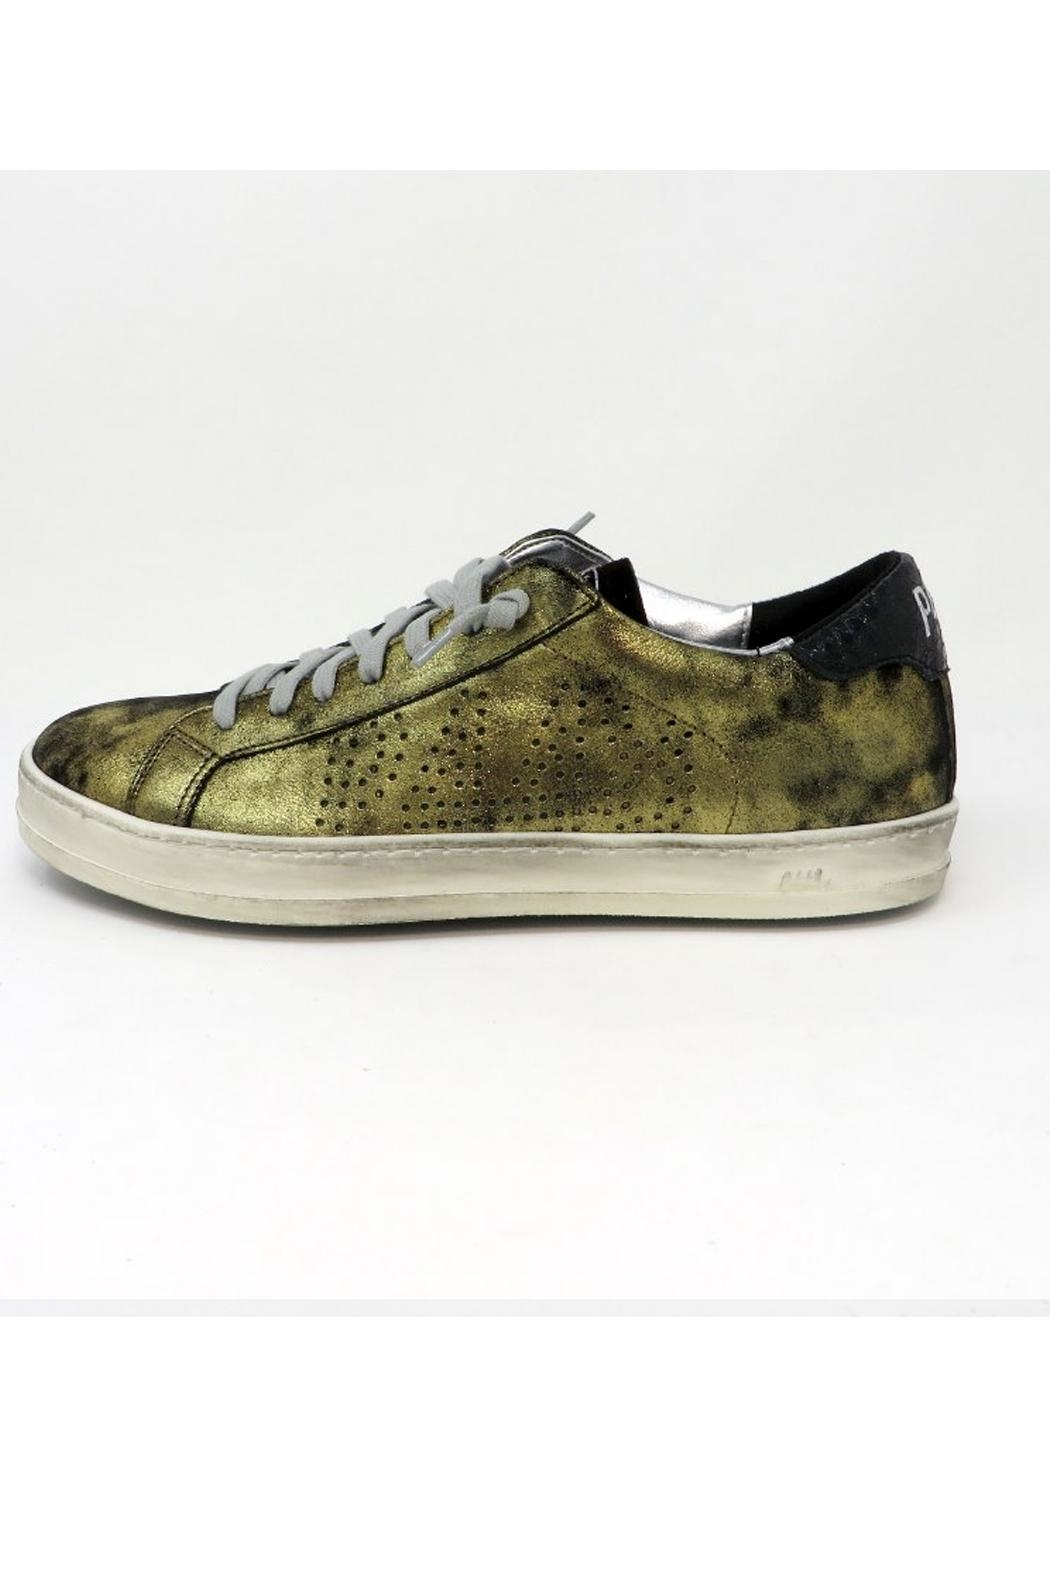 P448 Monet Leather Sneakers - Front Cropped Image